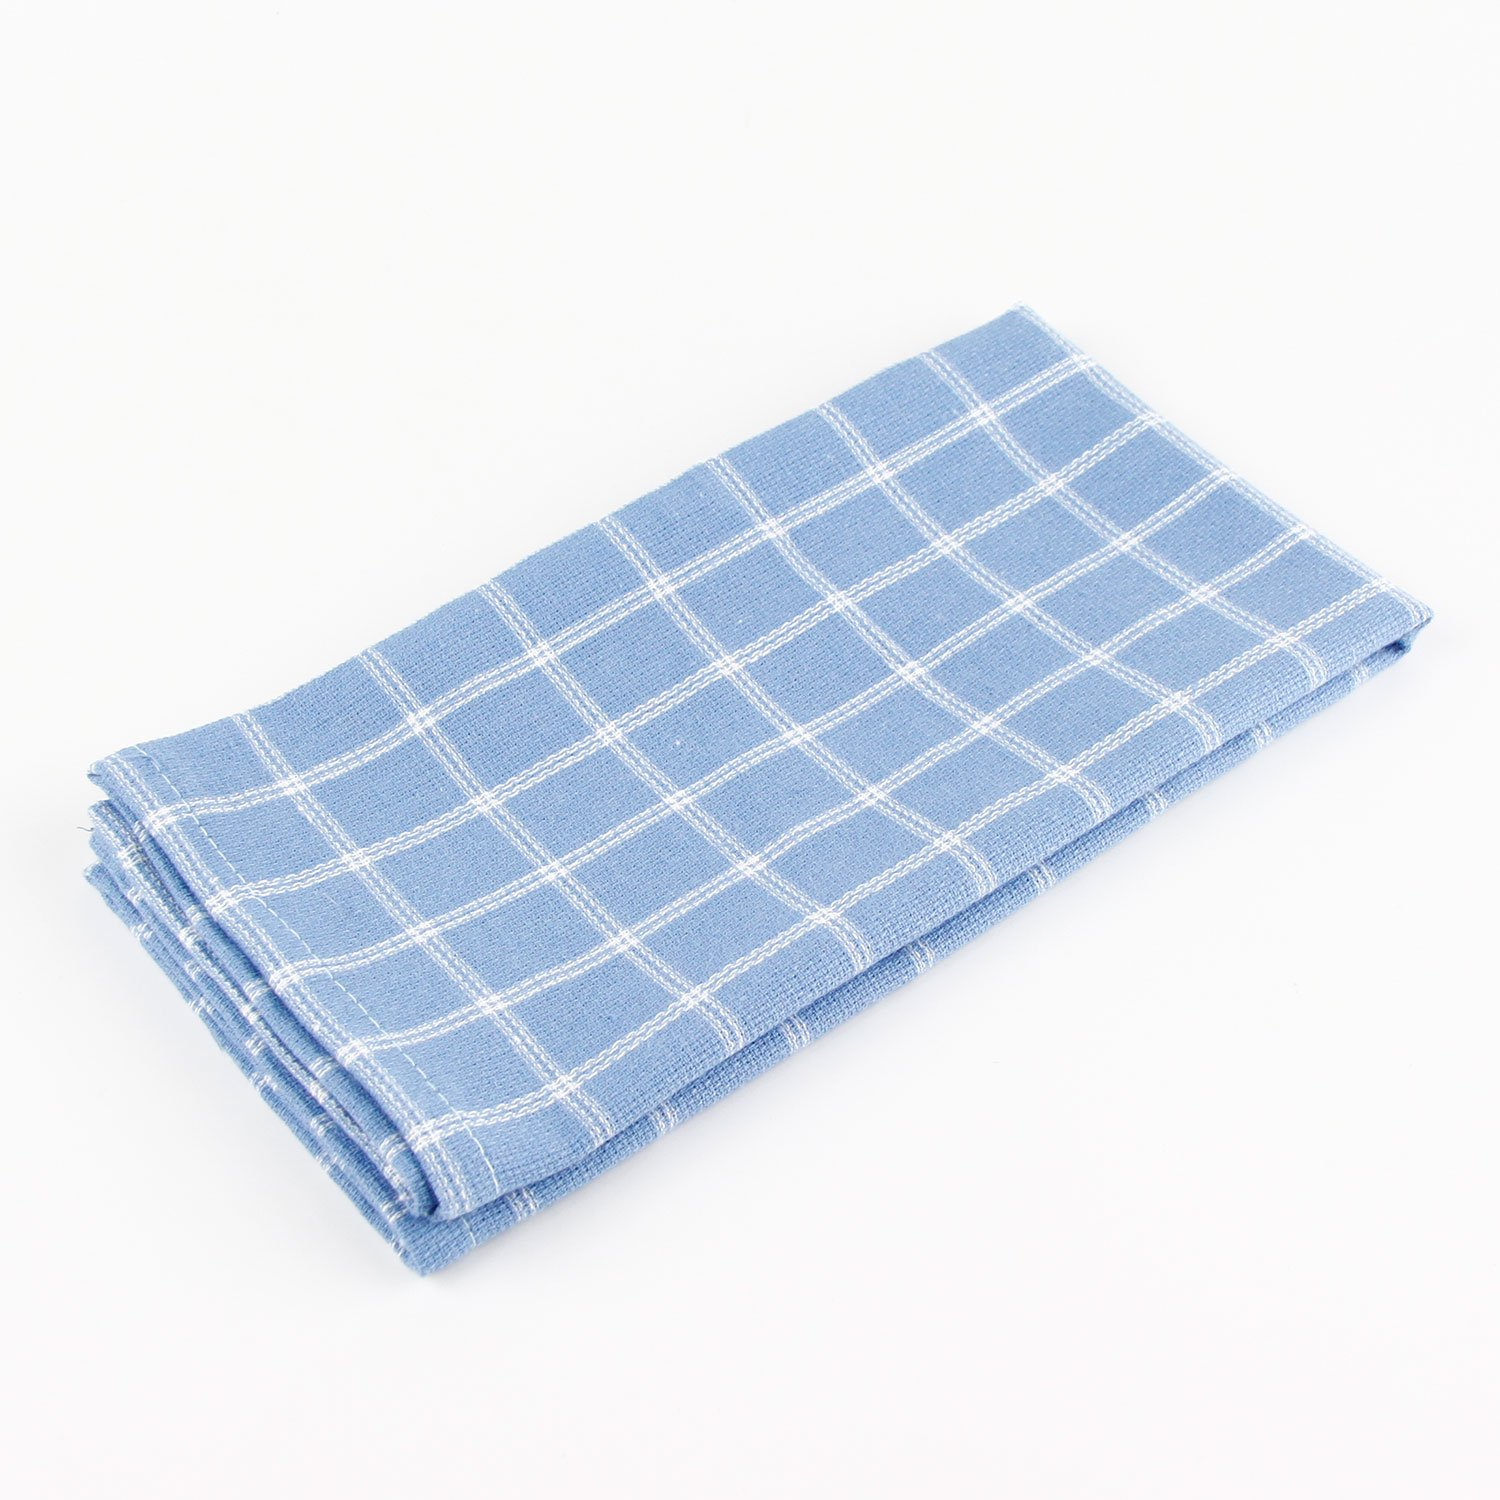 Navy - for Events /& Home Use INFEI Soft Double Striped Checked Cotton Dinner Cloth Napkins 17 x 17 inches Set of 12